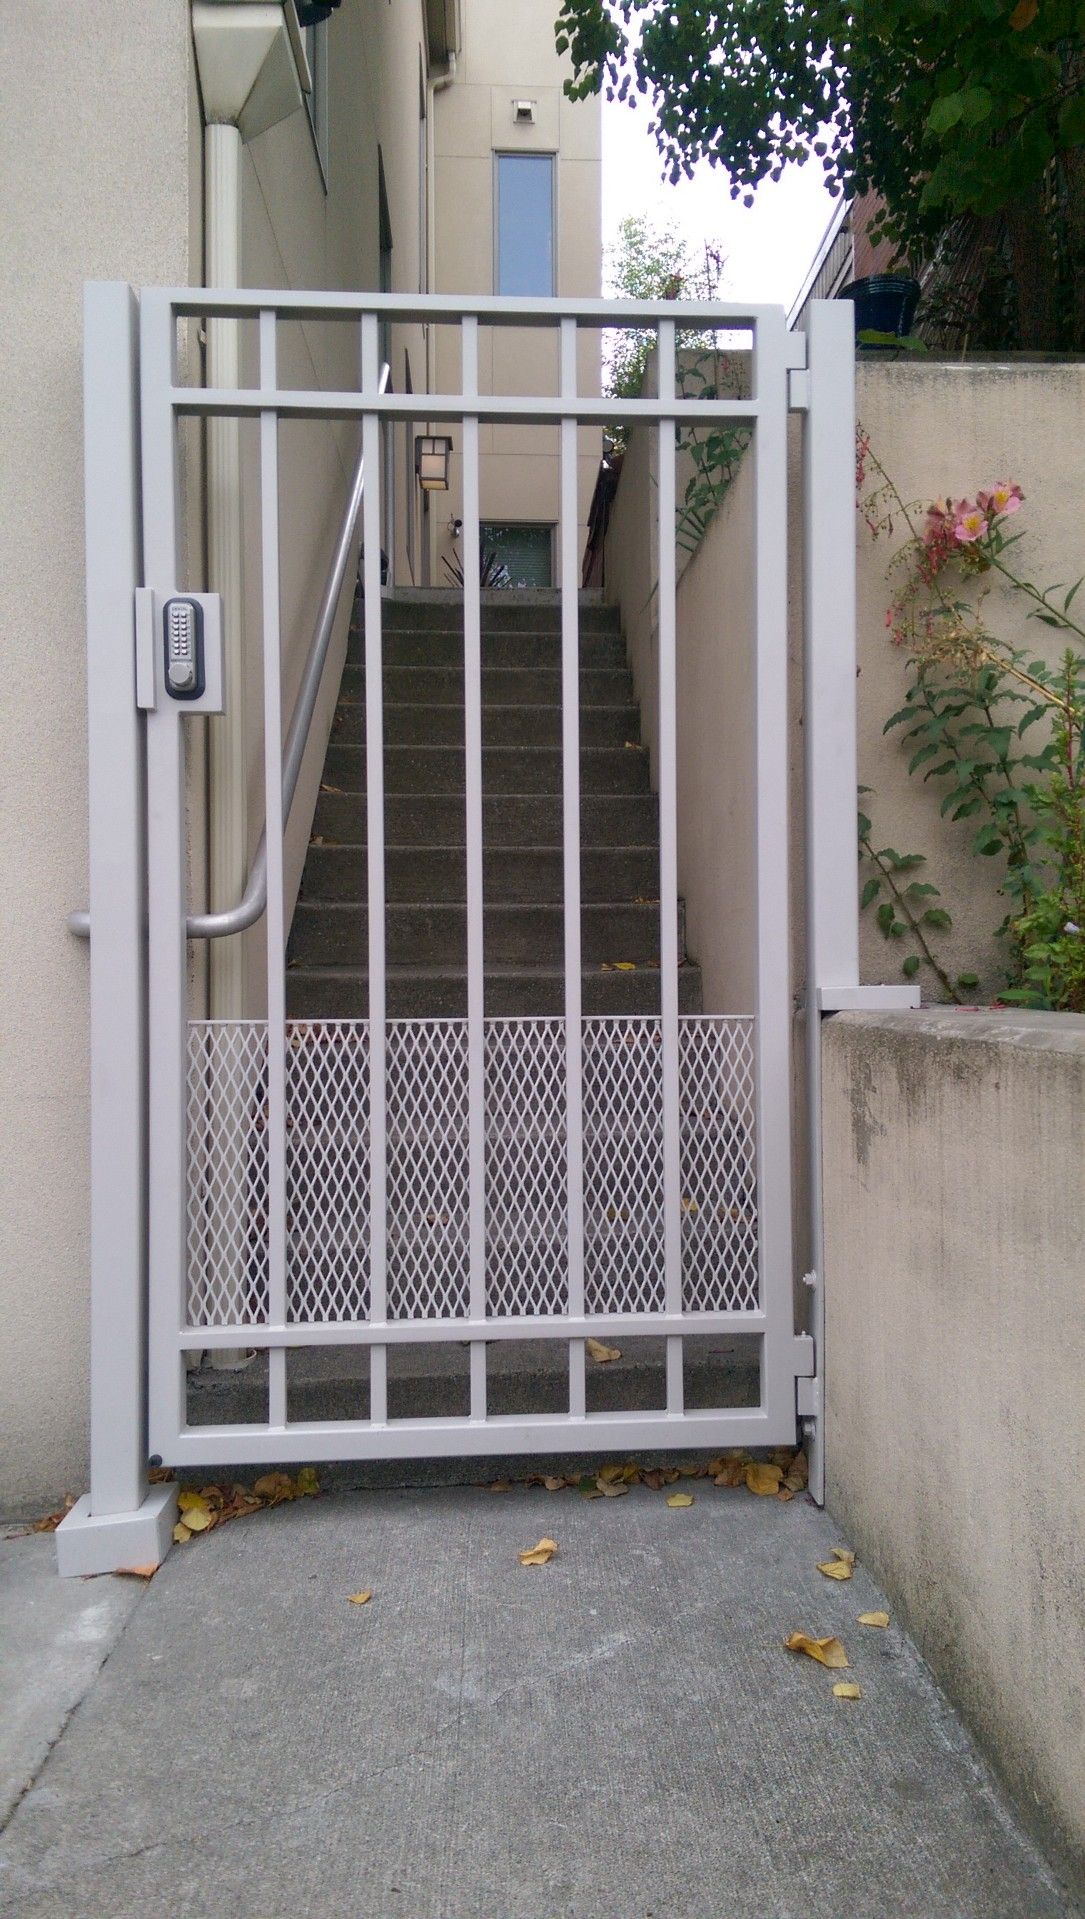 Pedestrian gate with combination lock system painted gray to